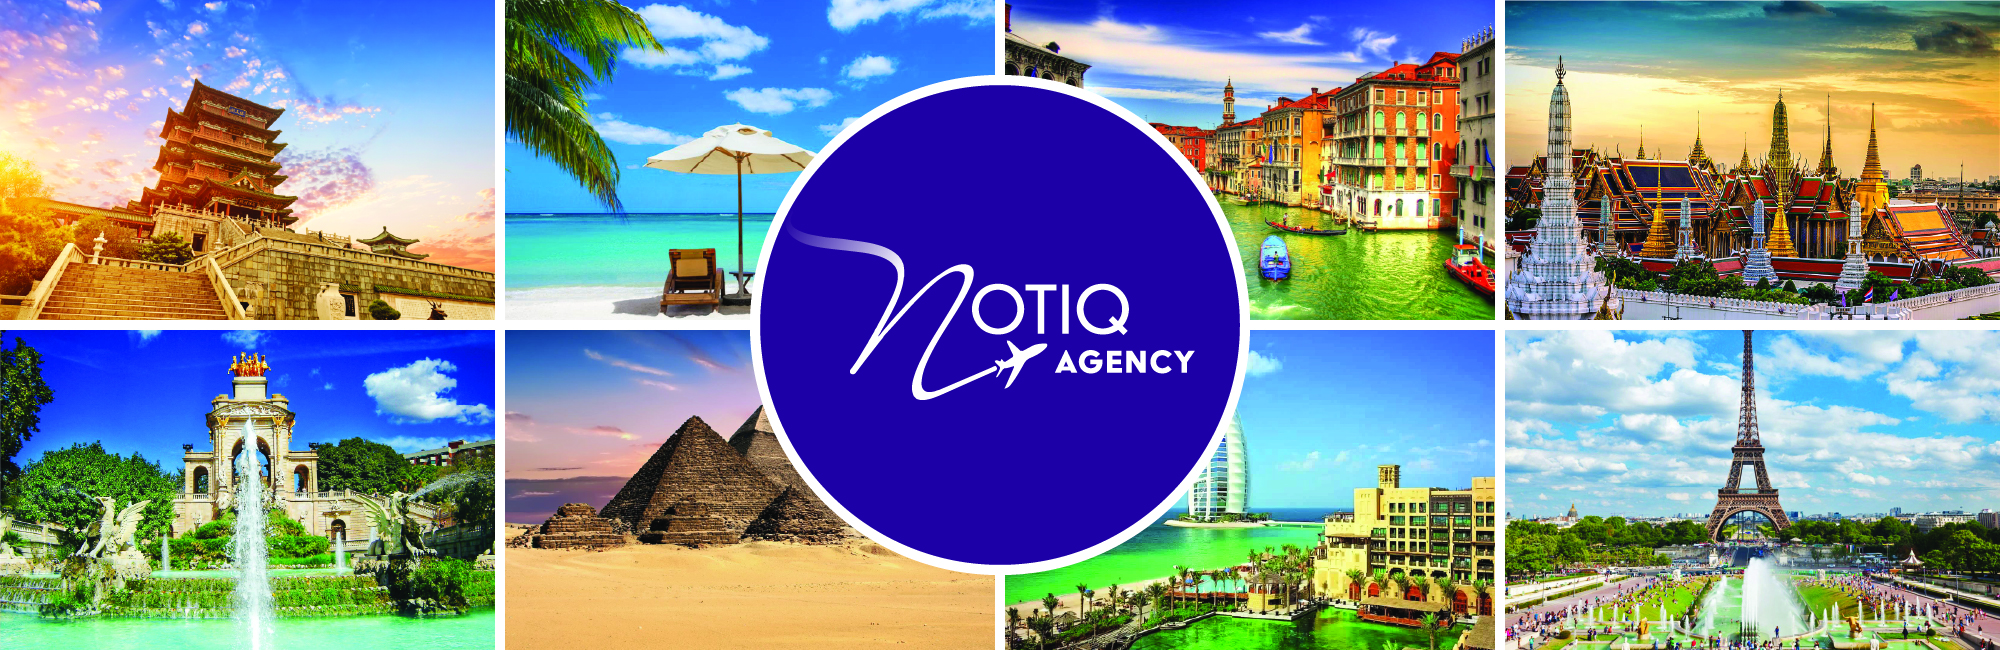 Notiq Agency™ - Full-Service Travel Company